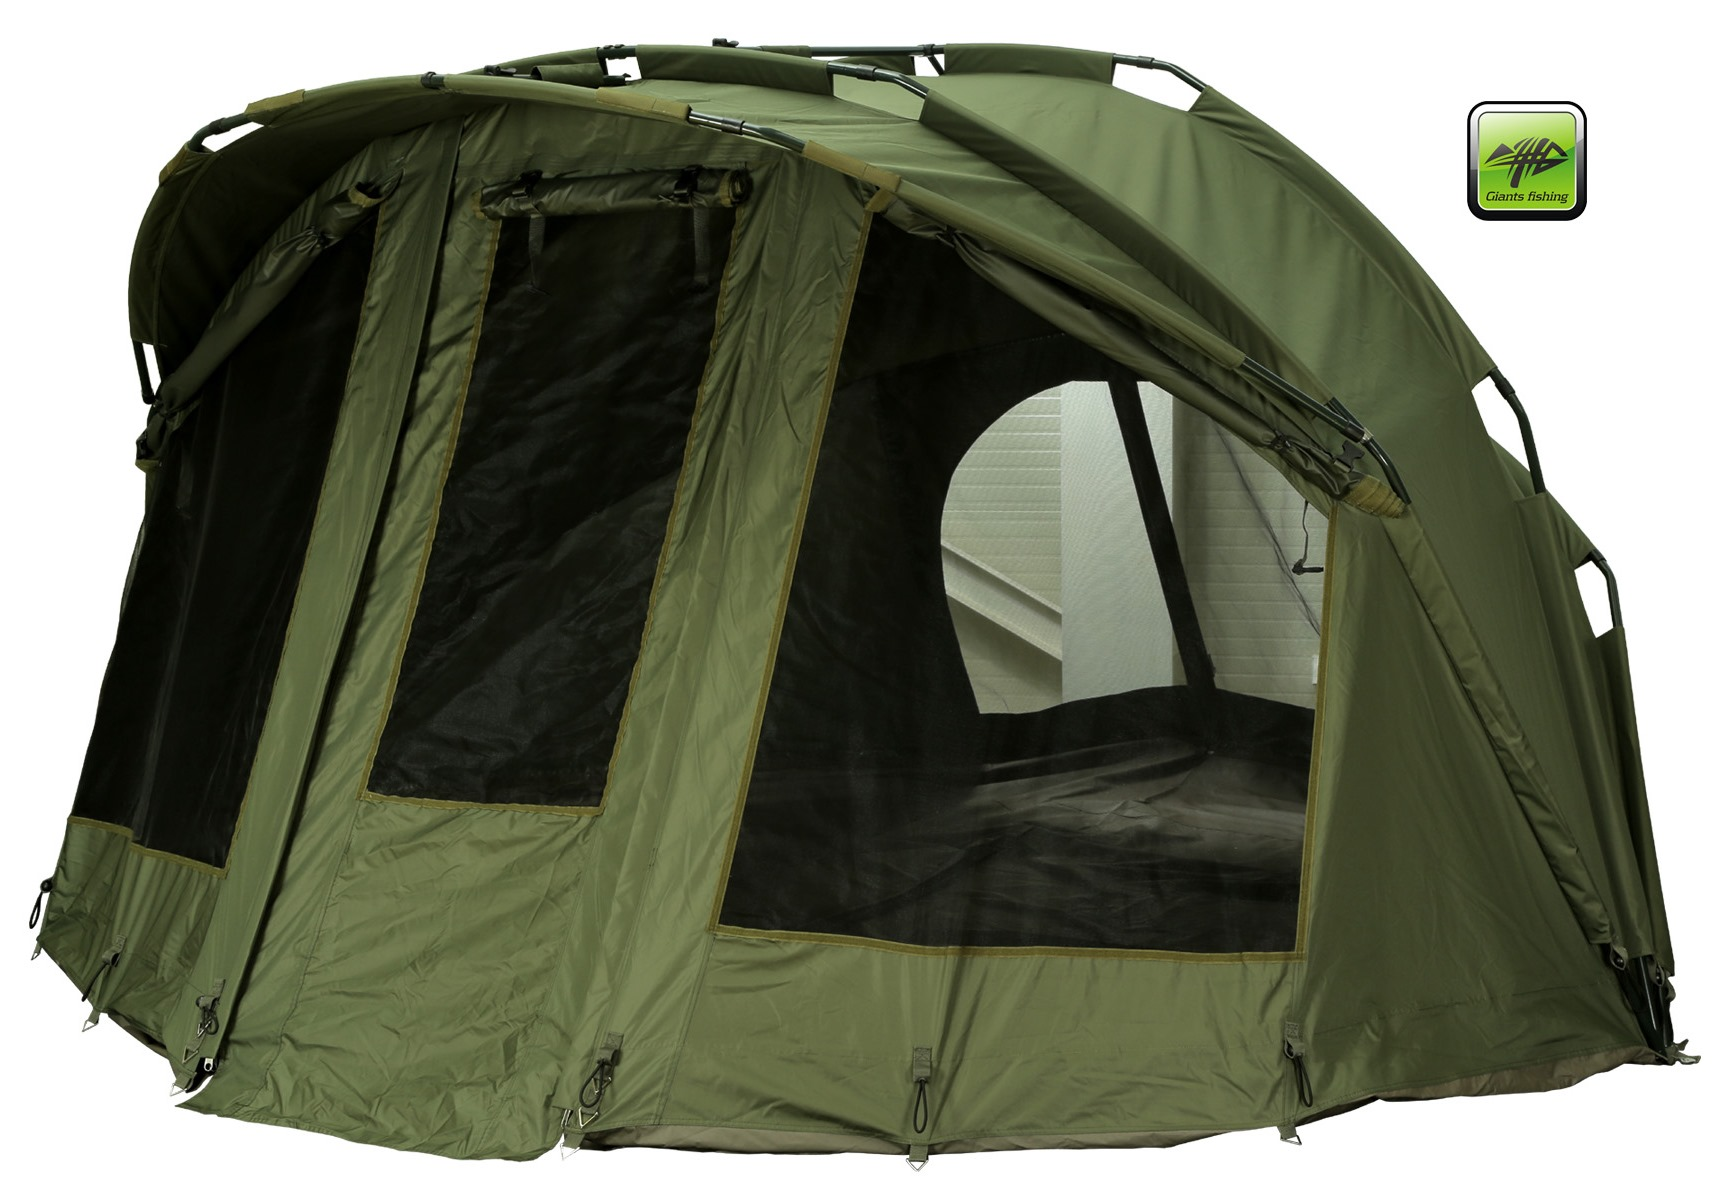 GIANTS FISHING Luxury Bivvy 2-3 man